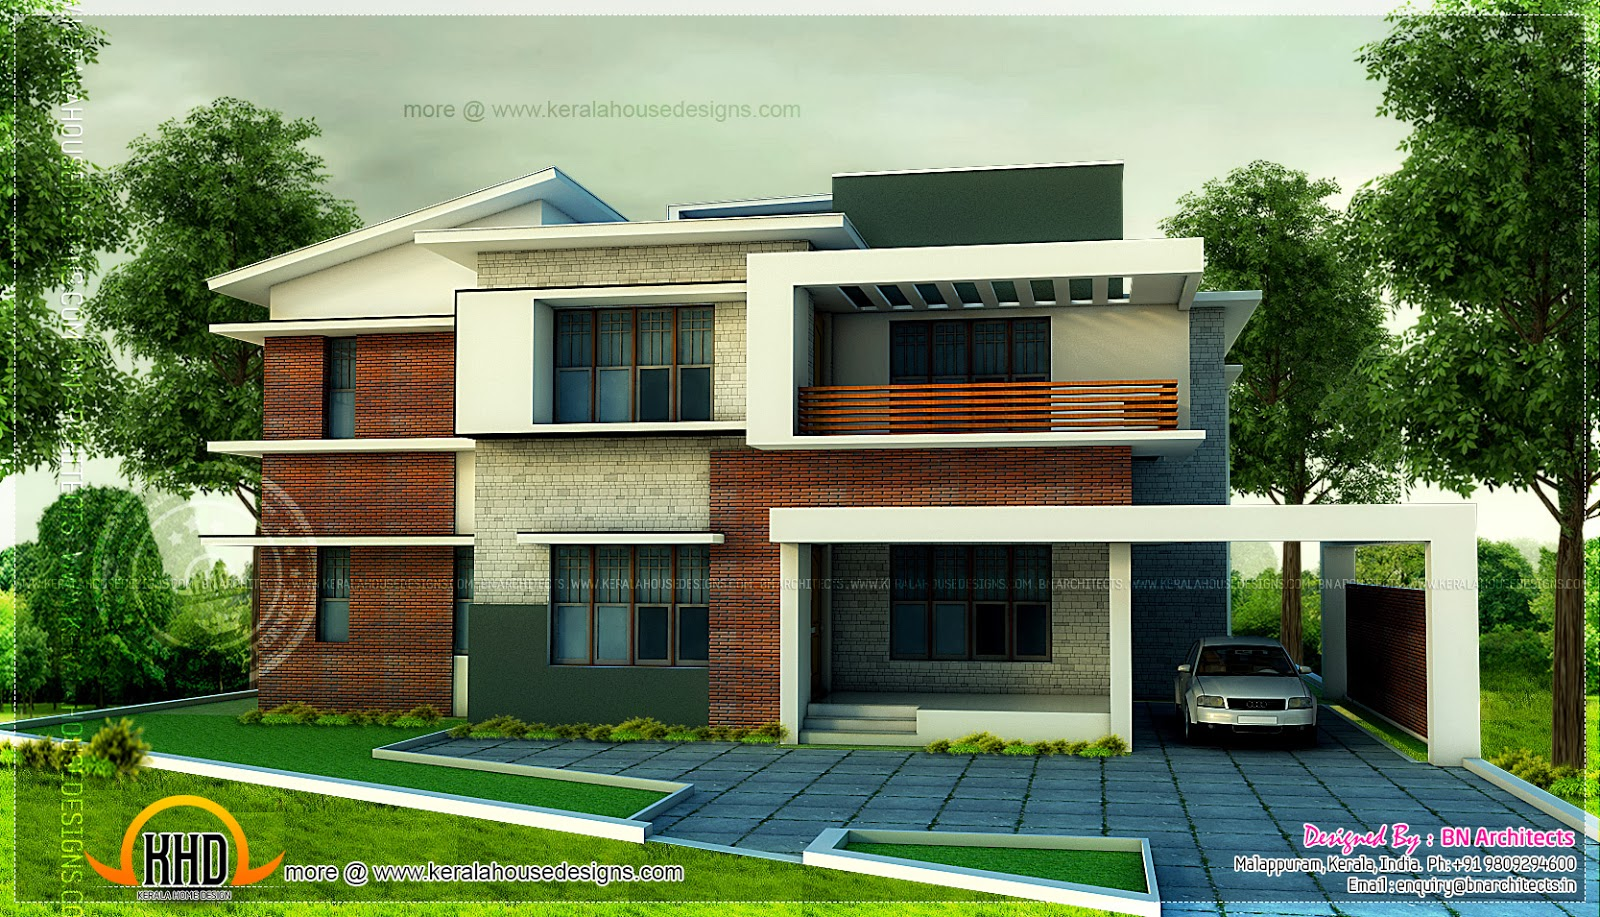 5 bedroom modern home in 3440 sq feet floor plan for 5 bedroom house